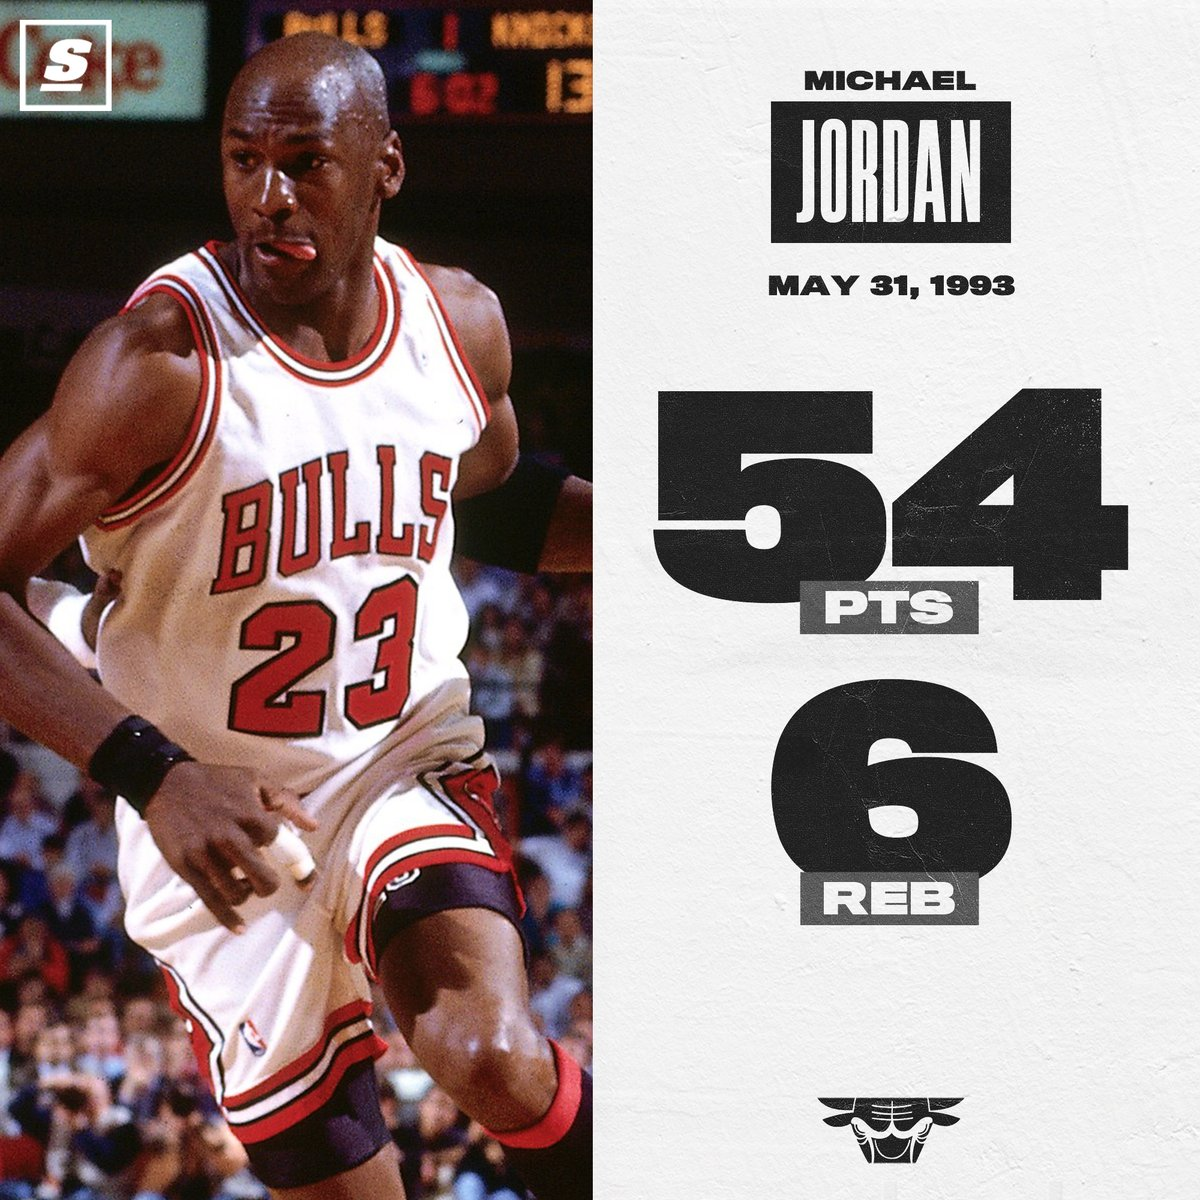 27 years ago, the Bulls trailed the Knicks 2-1 in the ECF. MJ put on a clinical performance at home to tie the series. 🐐